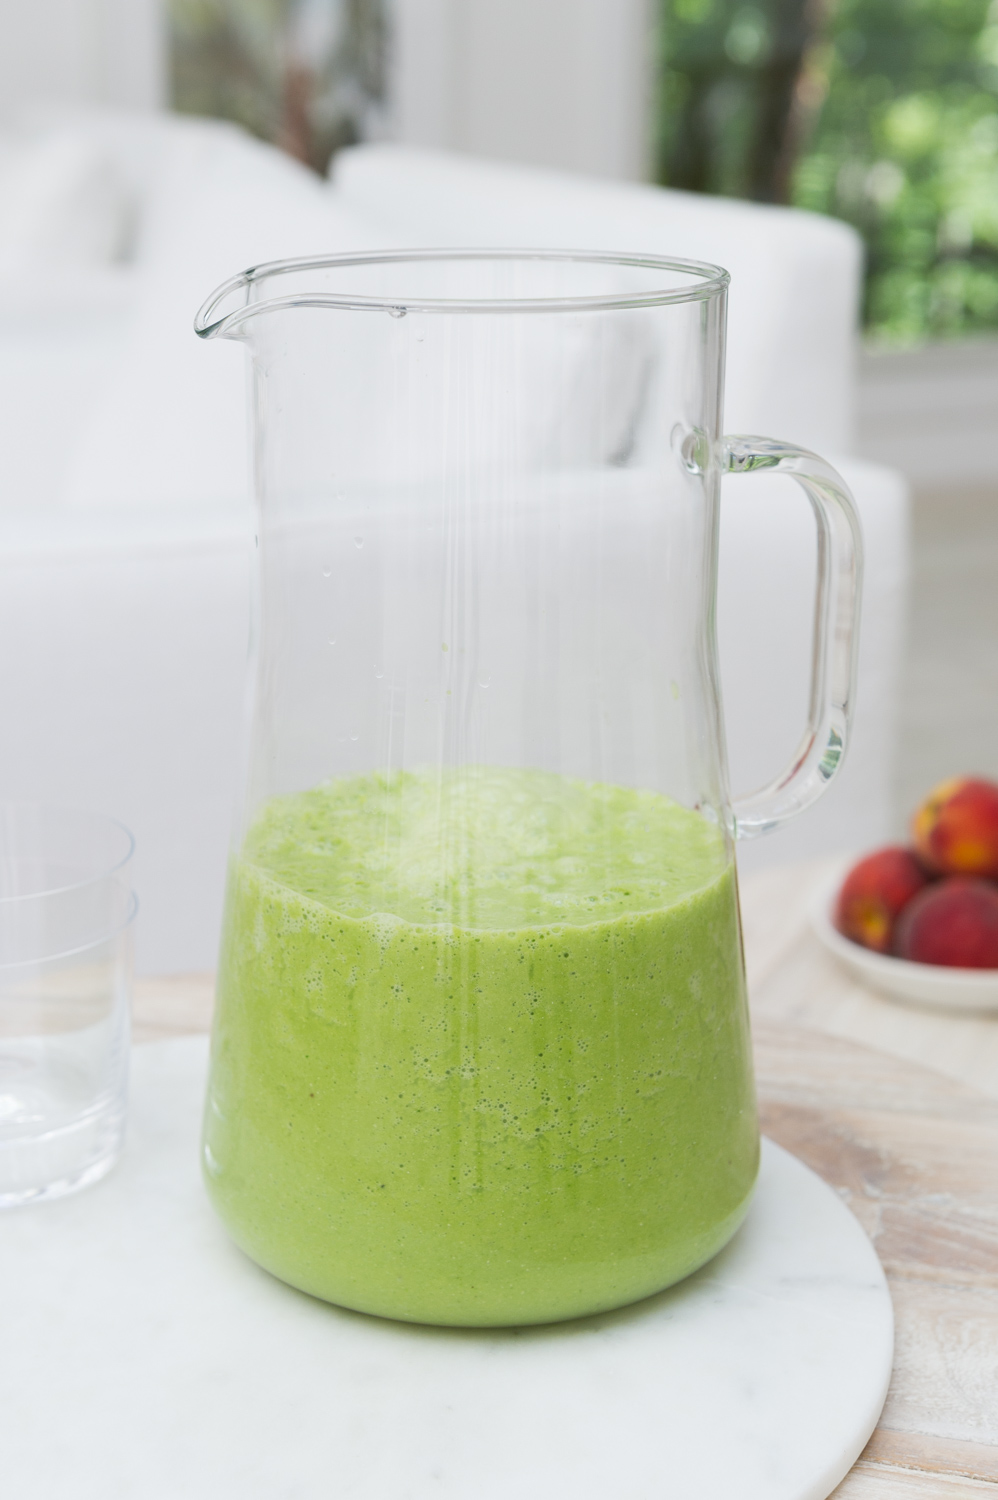 Spicy Citrus and Herb green smoothie recipe by Heather Cox of Eat Real Food